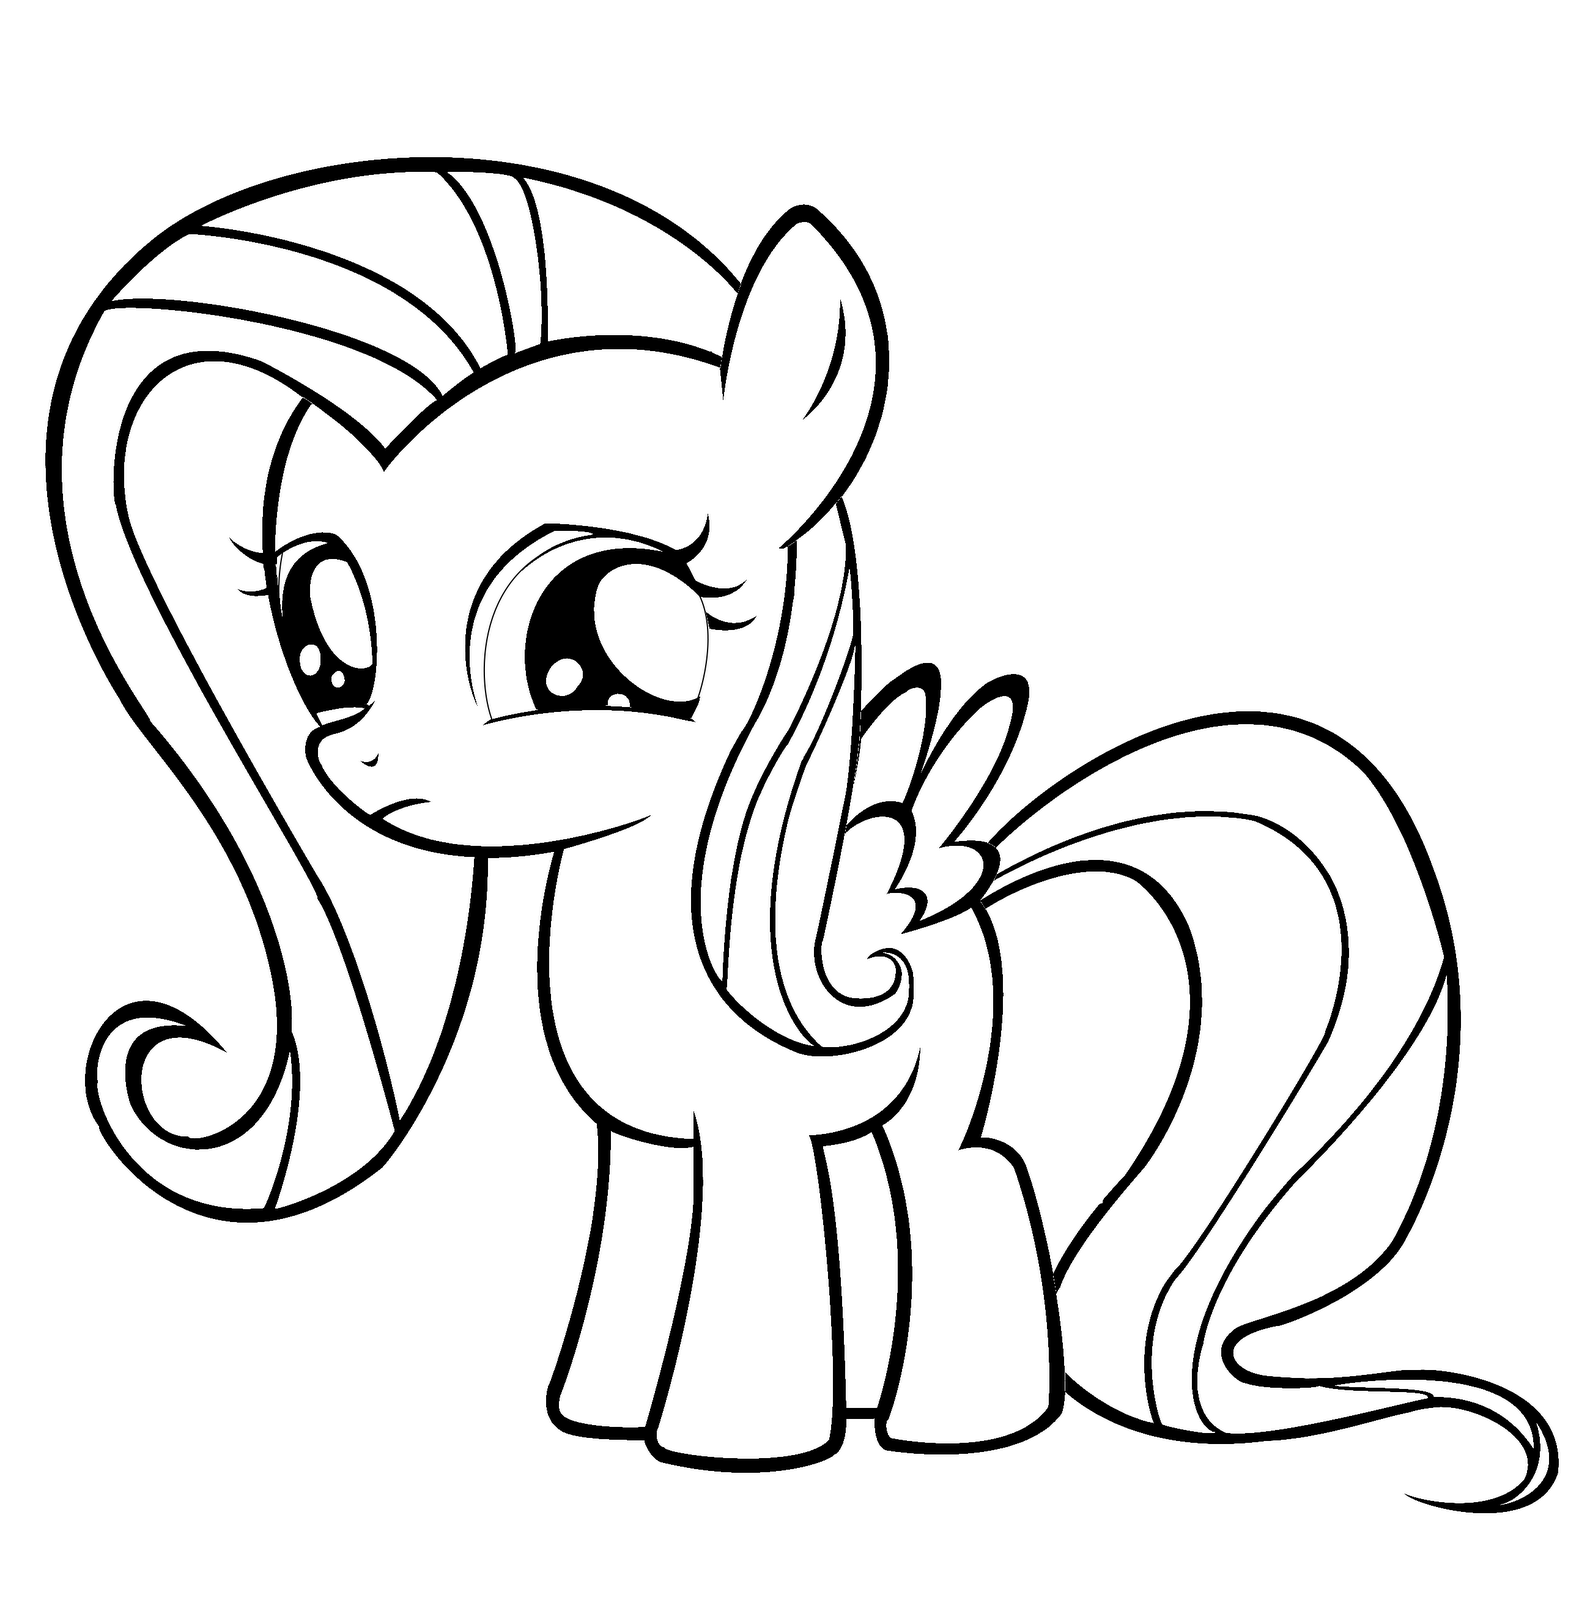 Fluttershy Coloring Pages Best Coloring Pages For Kids Coloring Pages To Print And Color